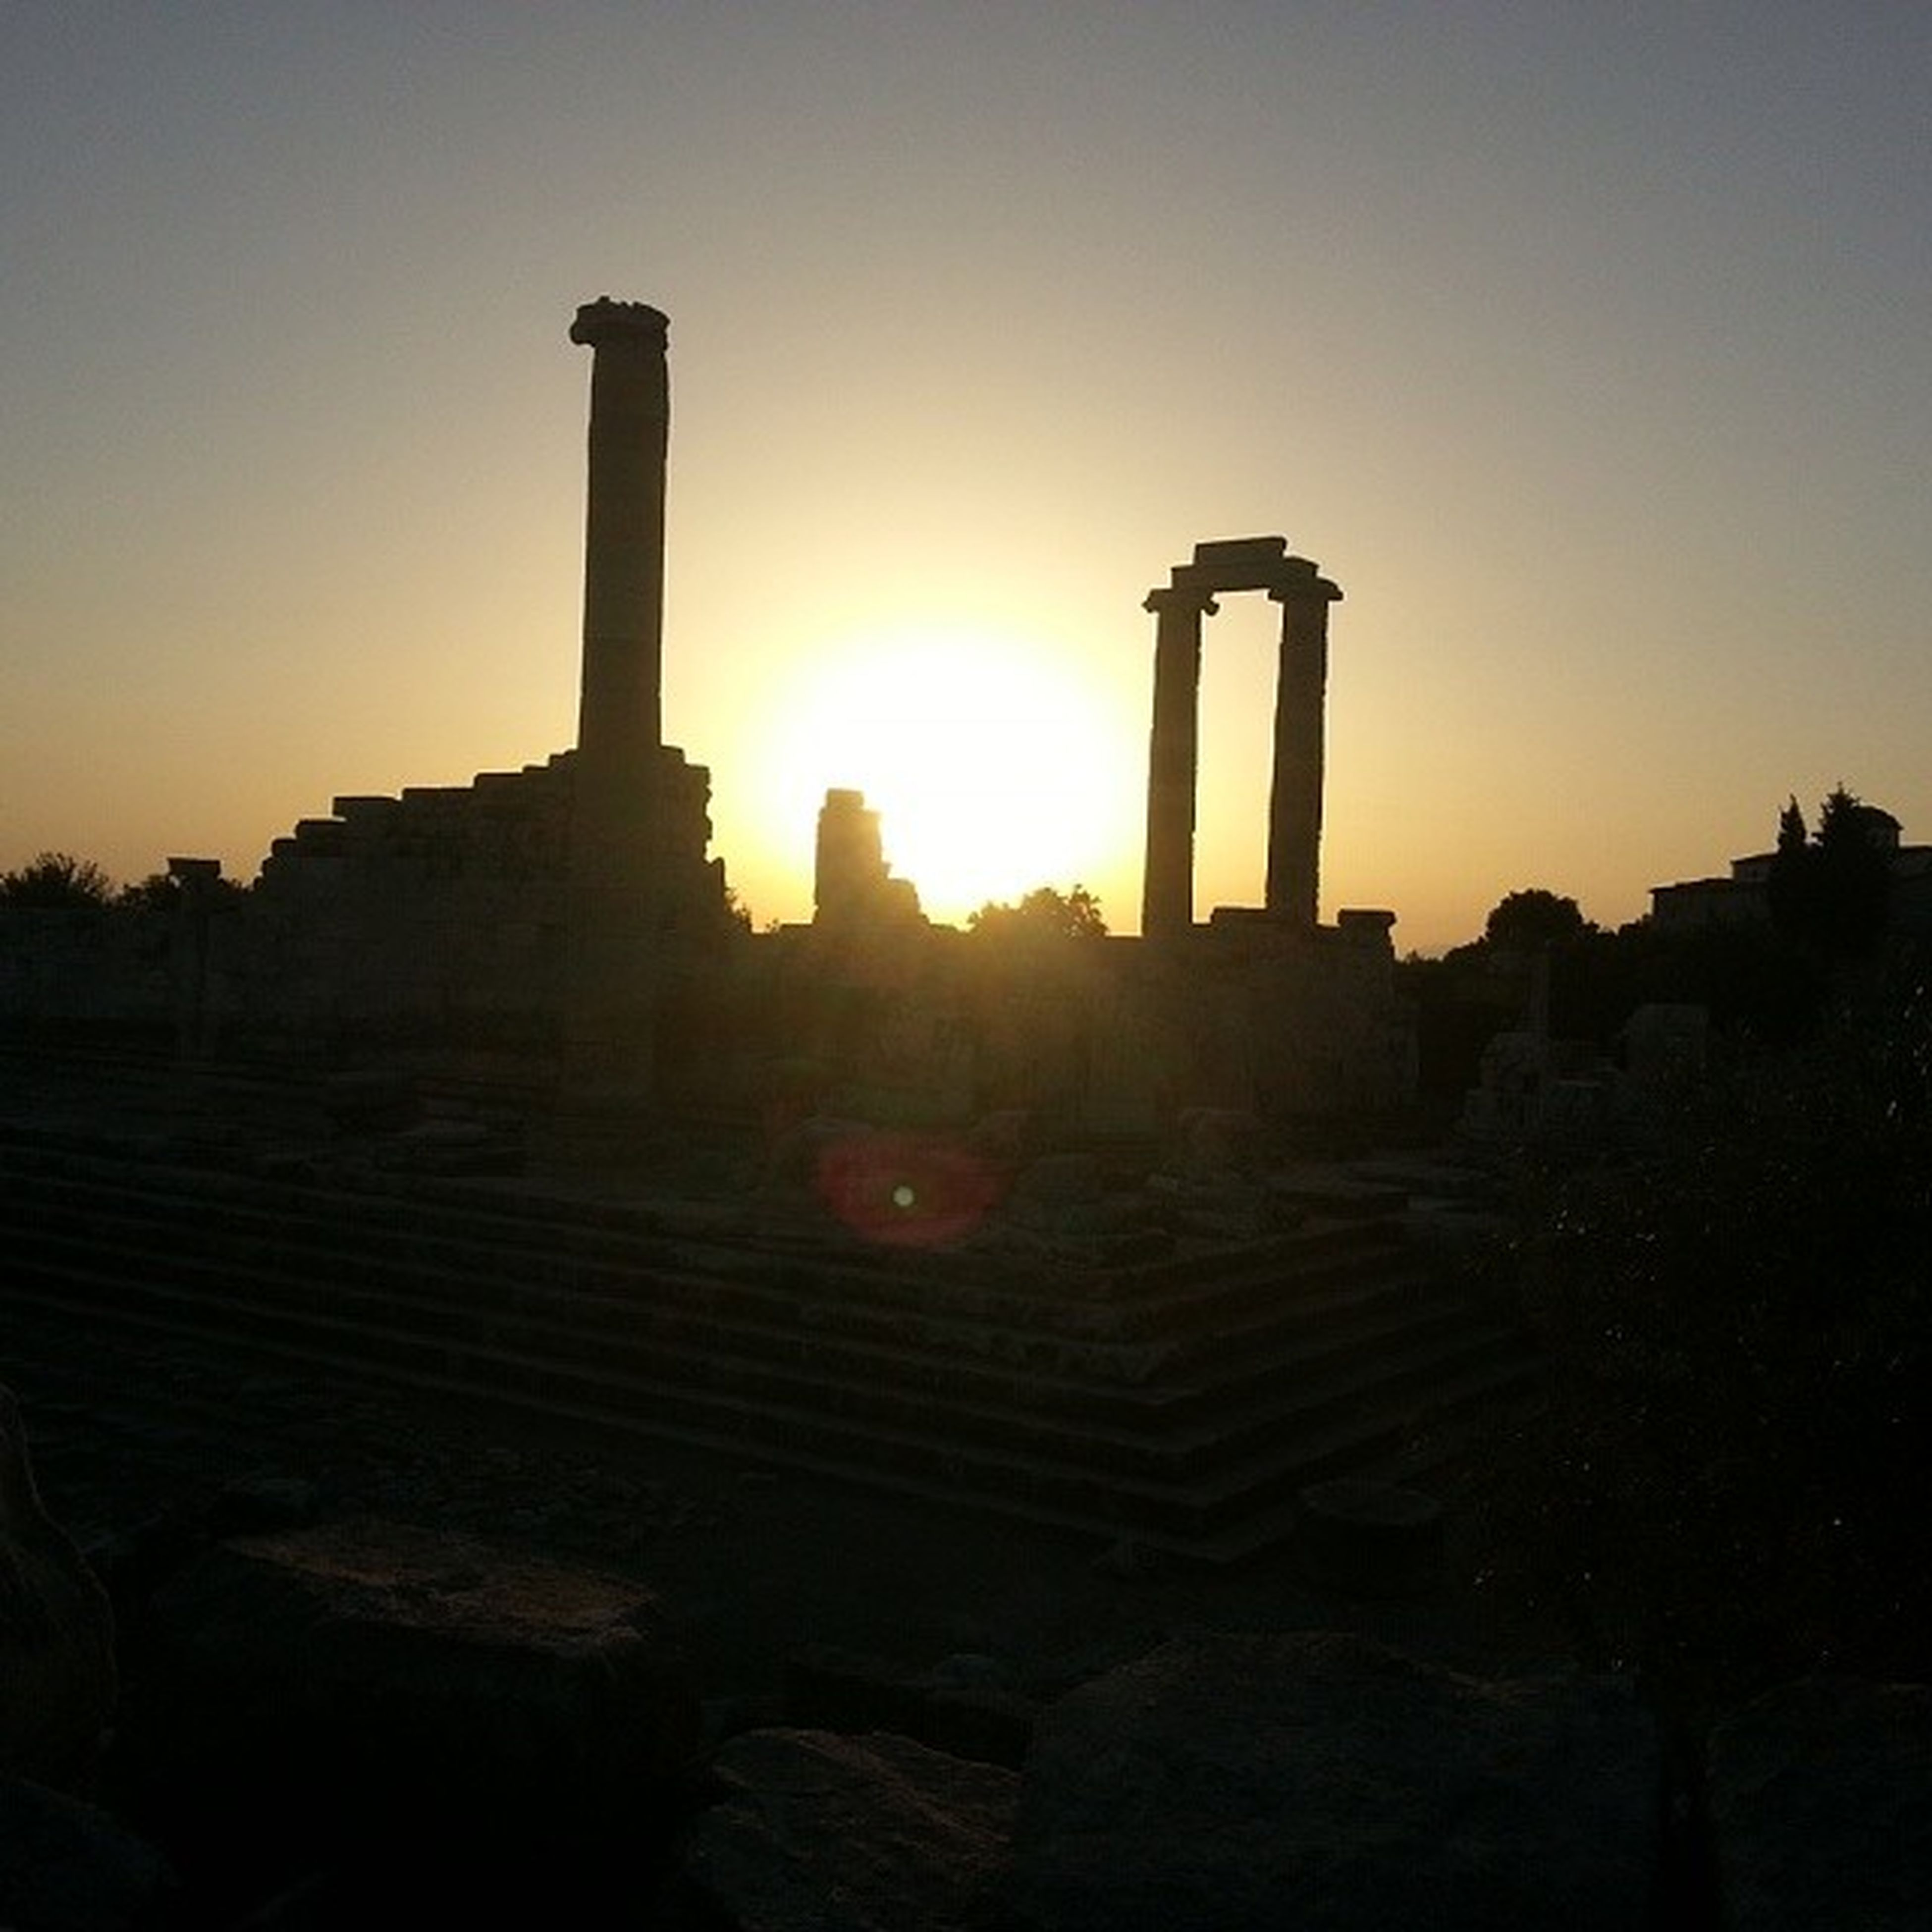 sunset, architecture, built structure, building exterior, sun, clear sky, history, silhouette, religion, famous place, travel destinations, ancient, place of worship, travel, spirituality, old ruin, tourism, sunlight, sky, the past